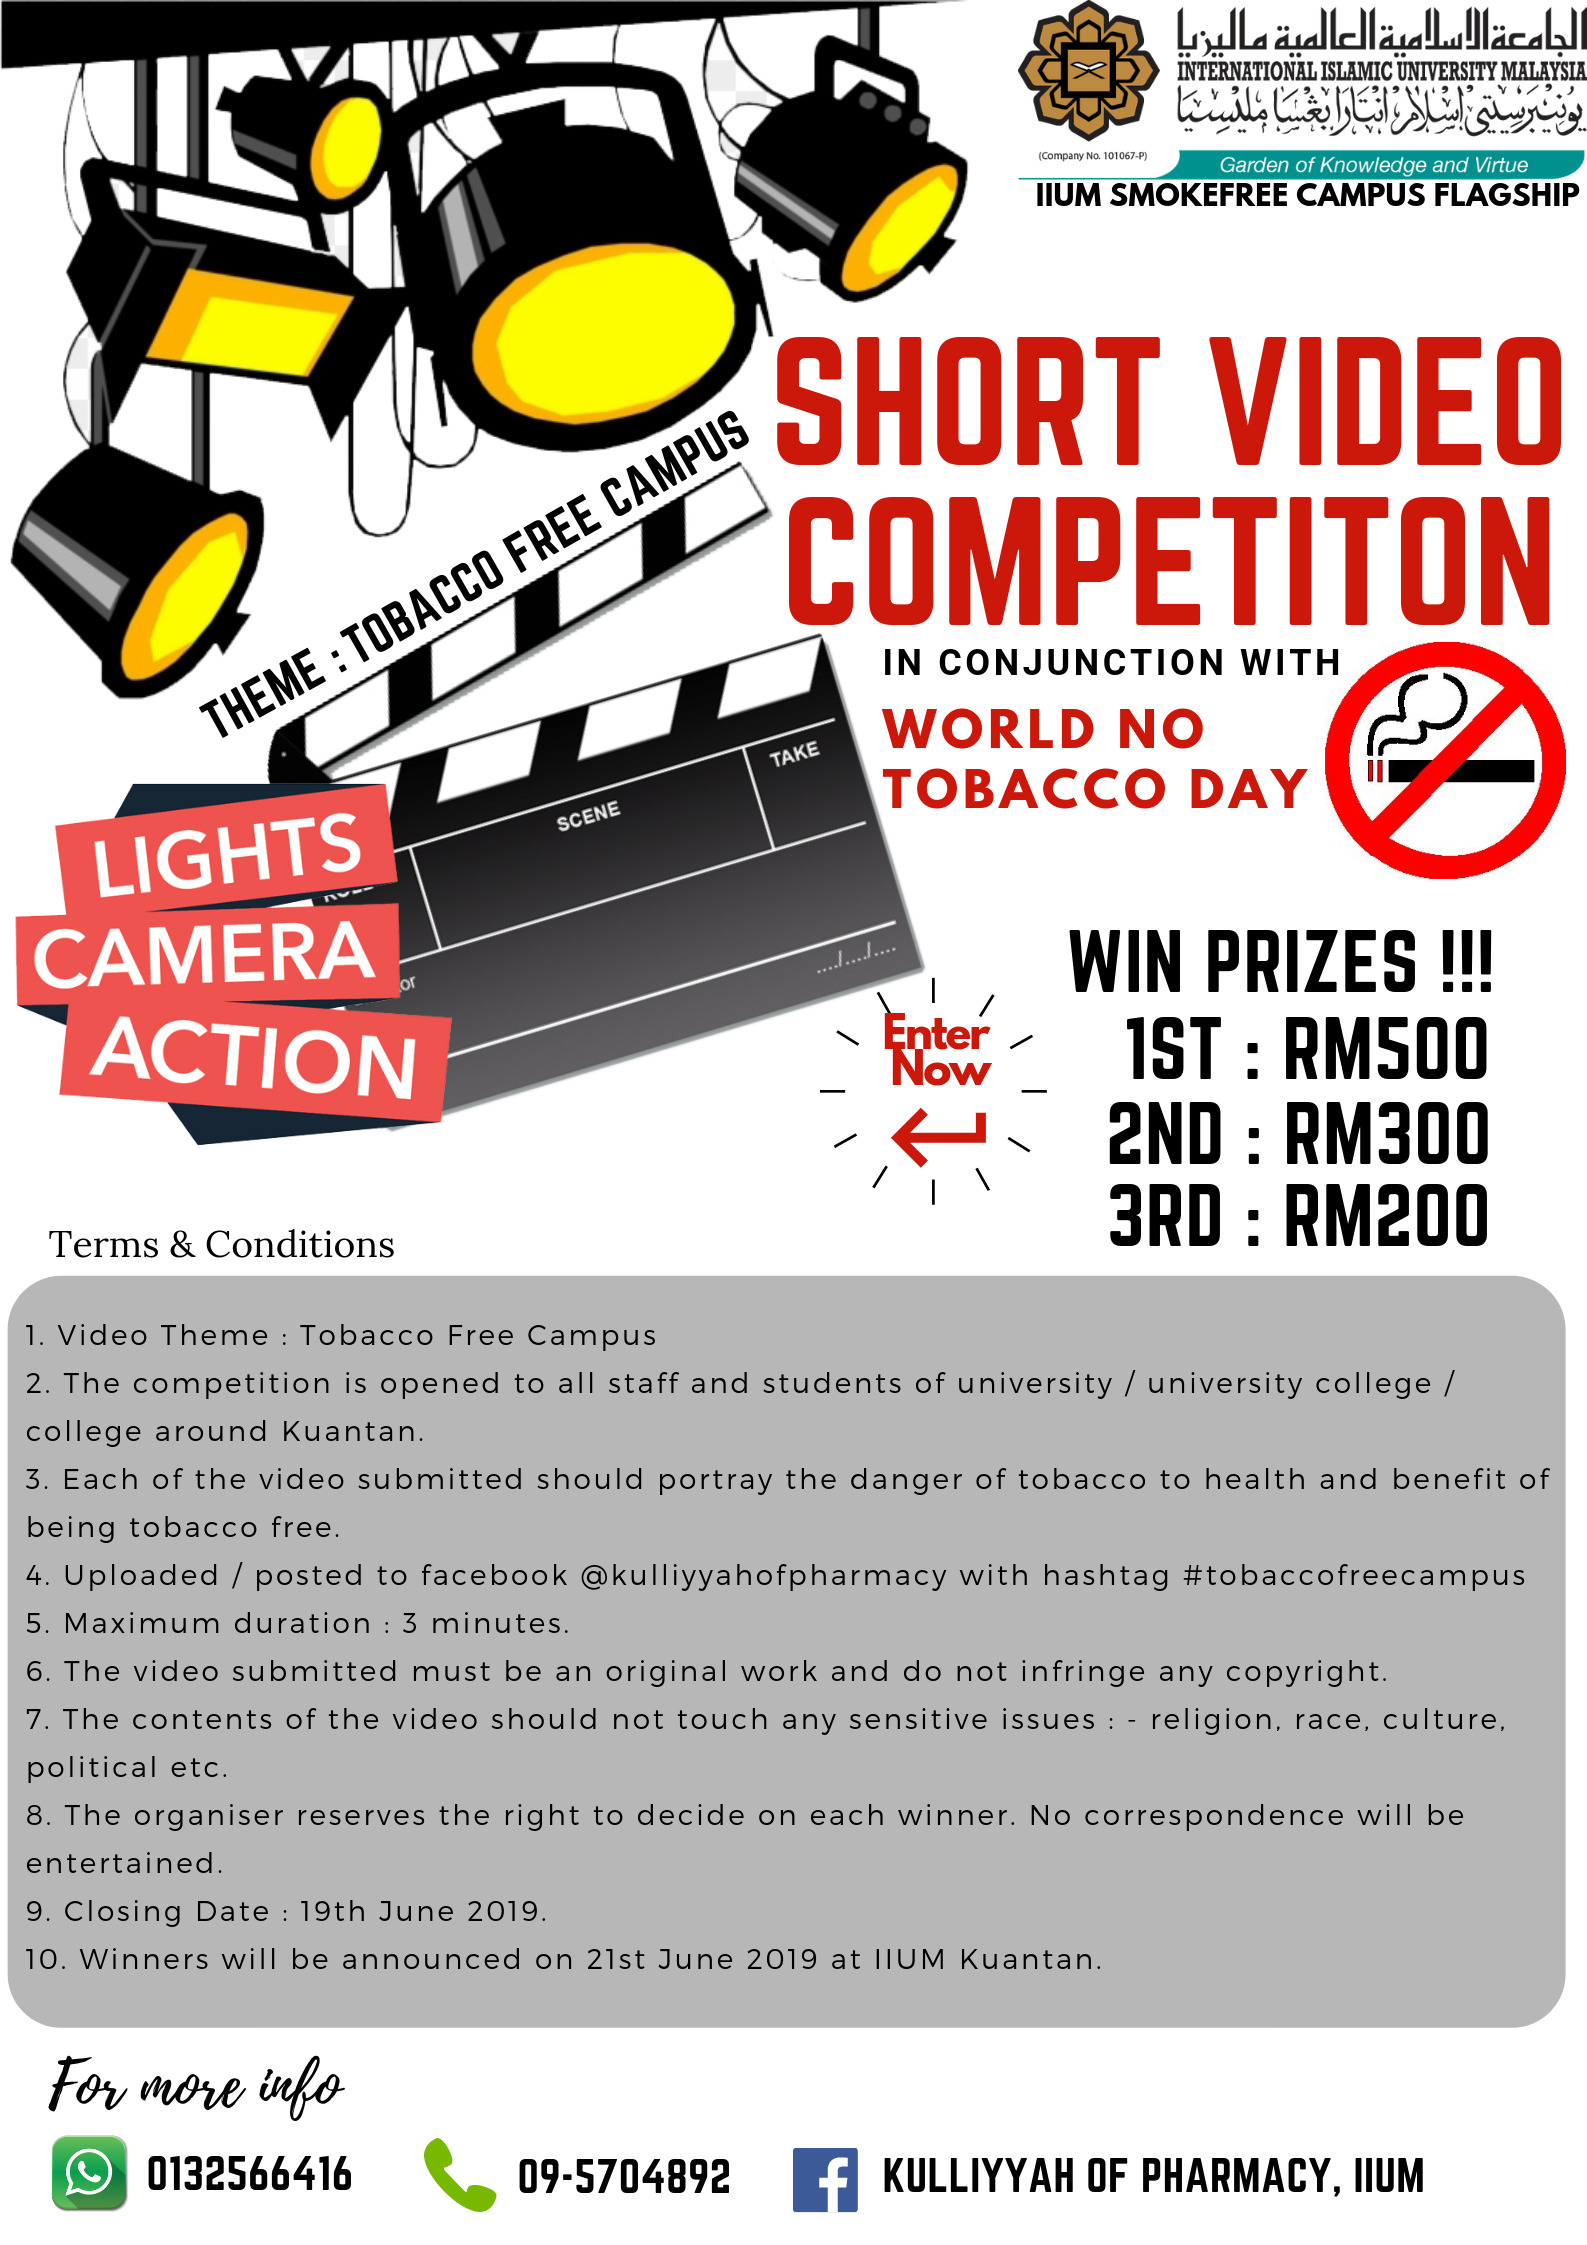 Short Video Competition in conjuction with World No Tobacco Day 2019, IIUM Kuantan